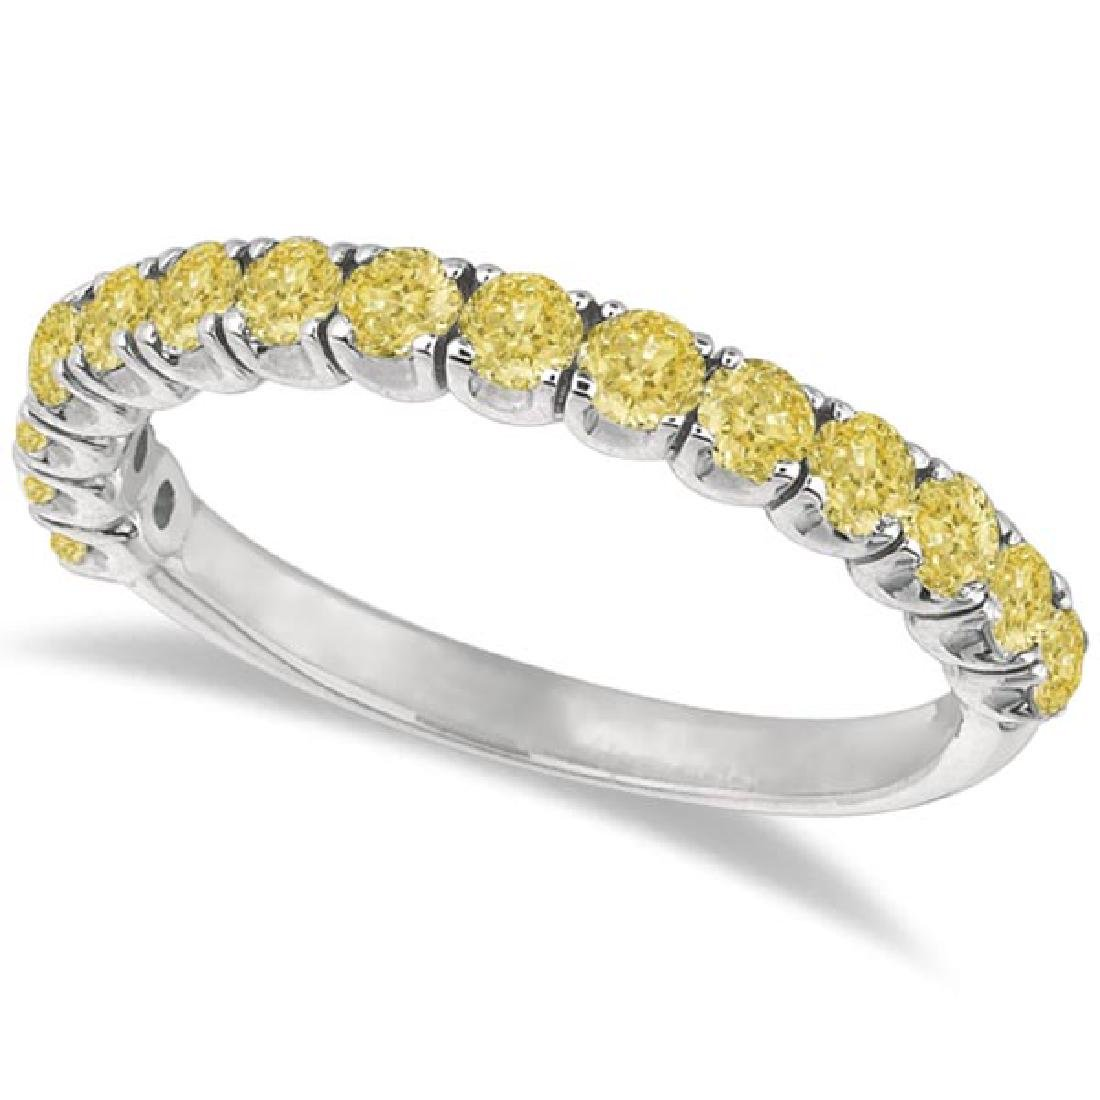 Yellow Canary Diamond Ring Anniversary Band 14k White G